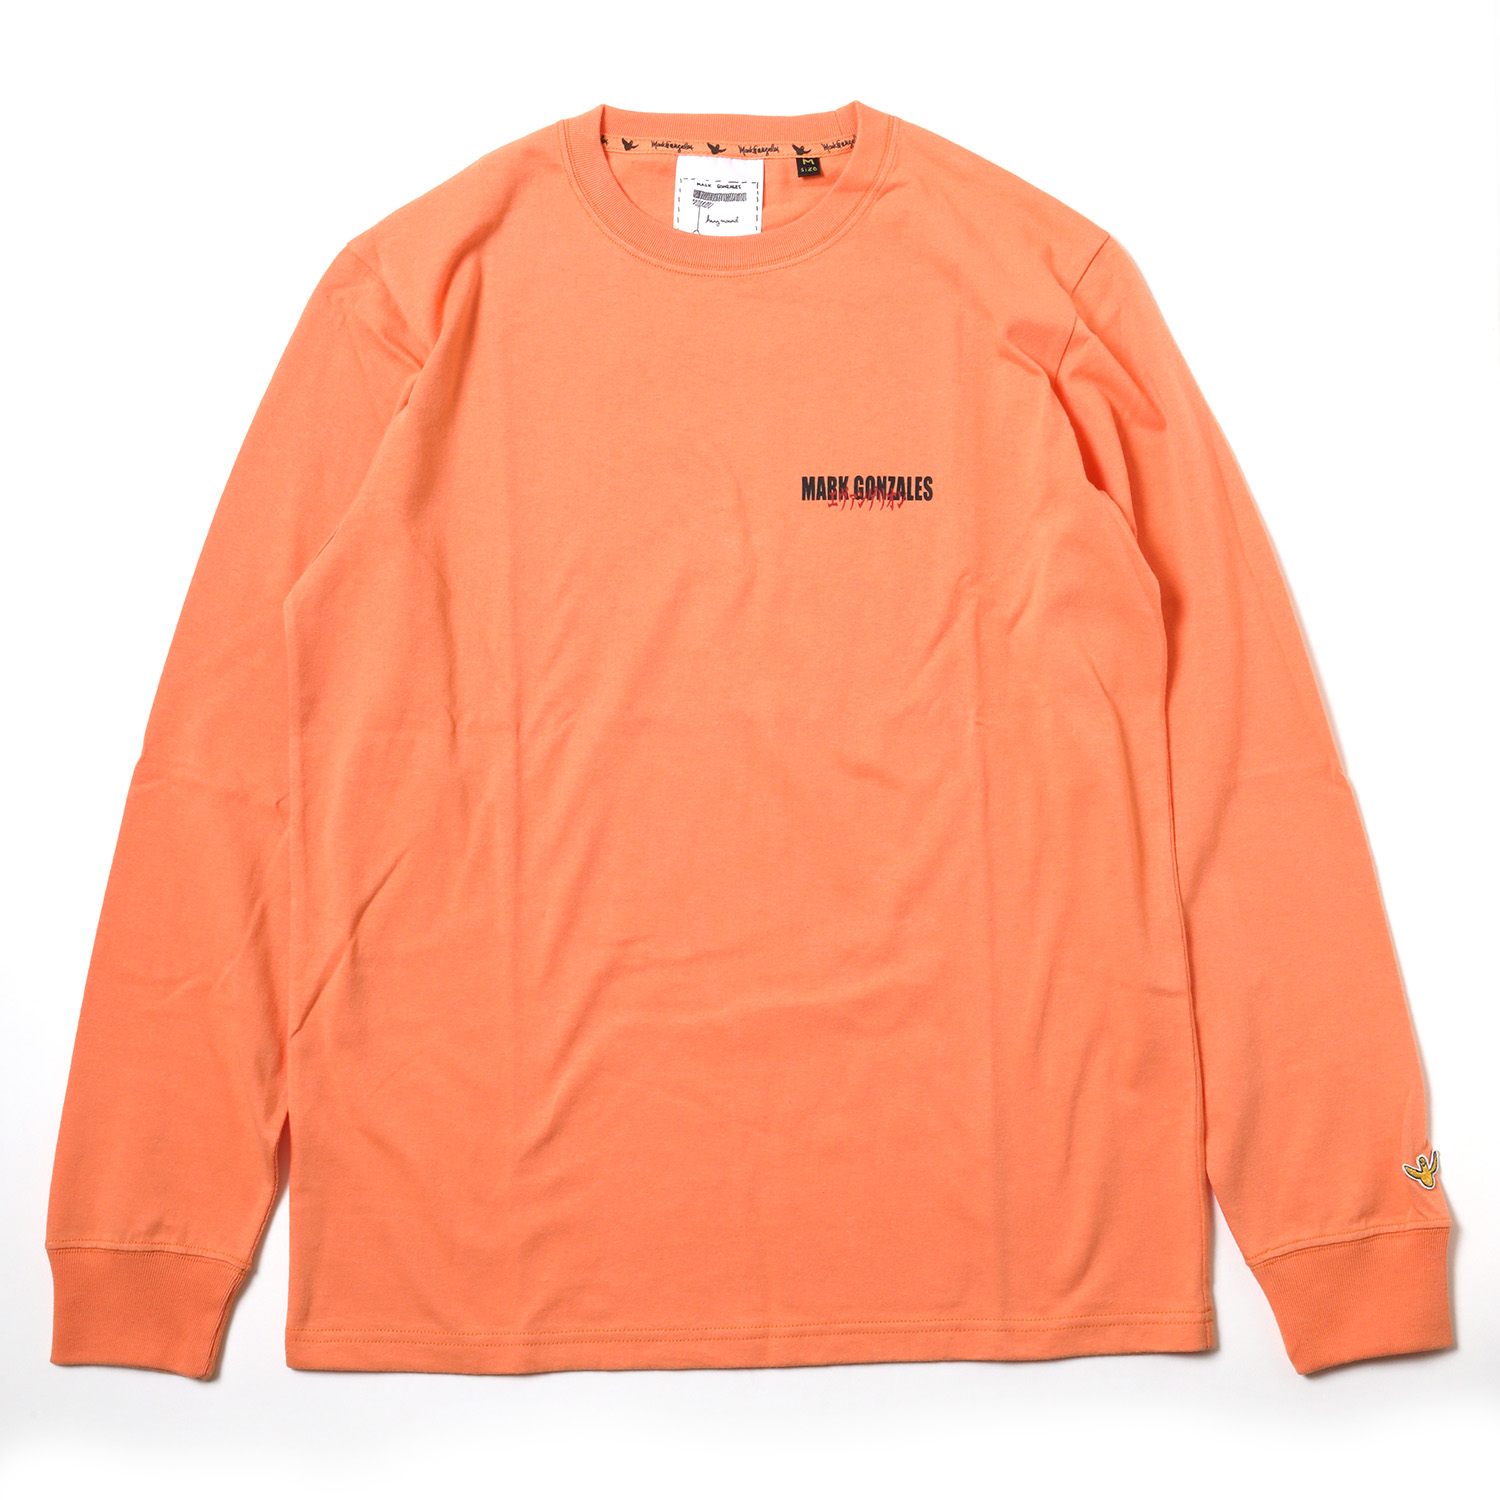 3rd Impact Pt. L/S TEE by MARK GONZALES (L.ORANGE)